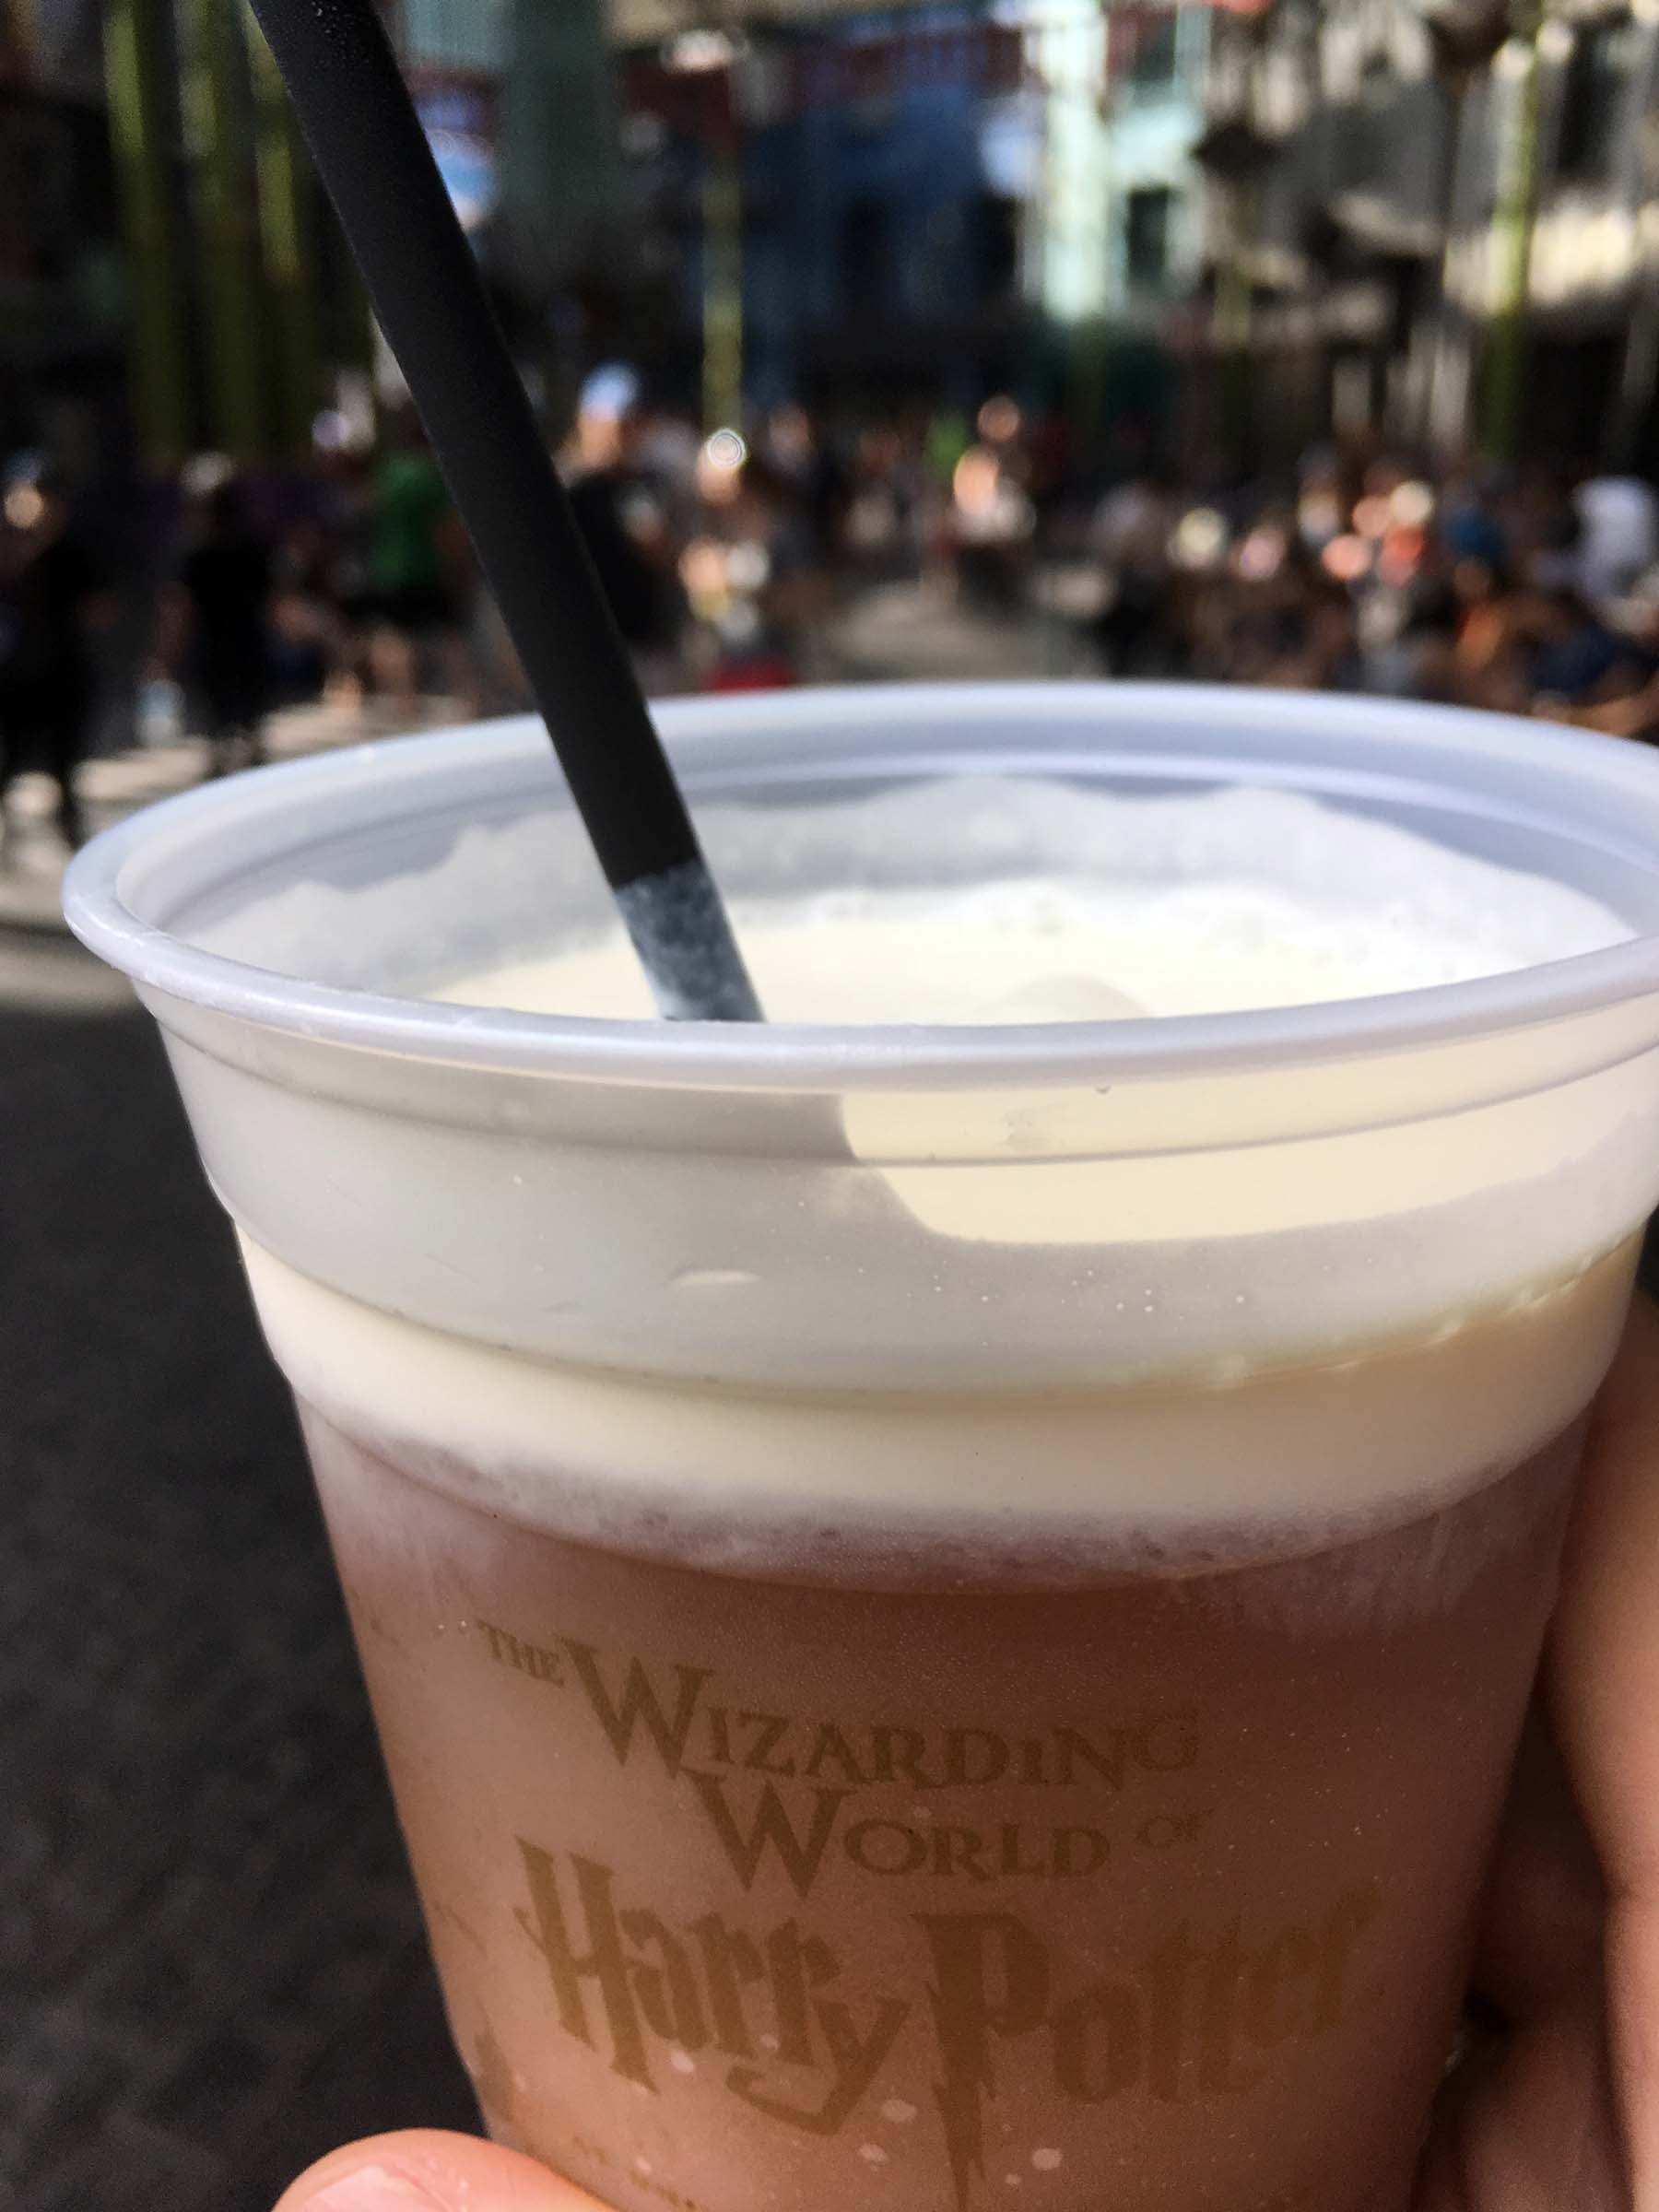 ButterBeer is a Snack Credit